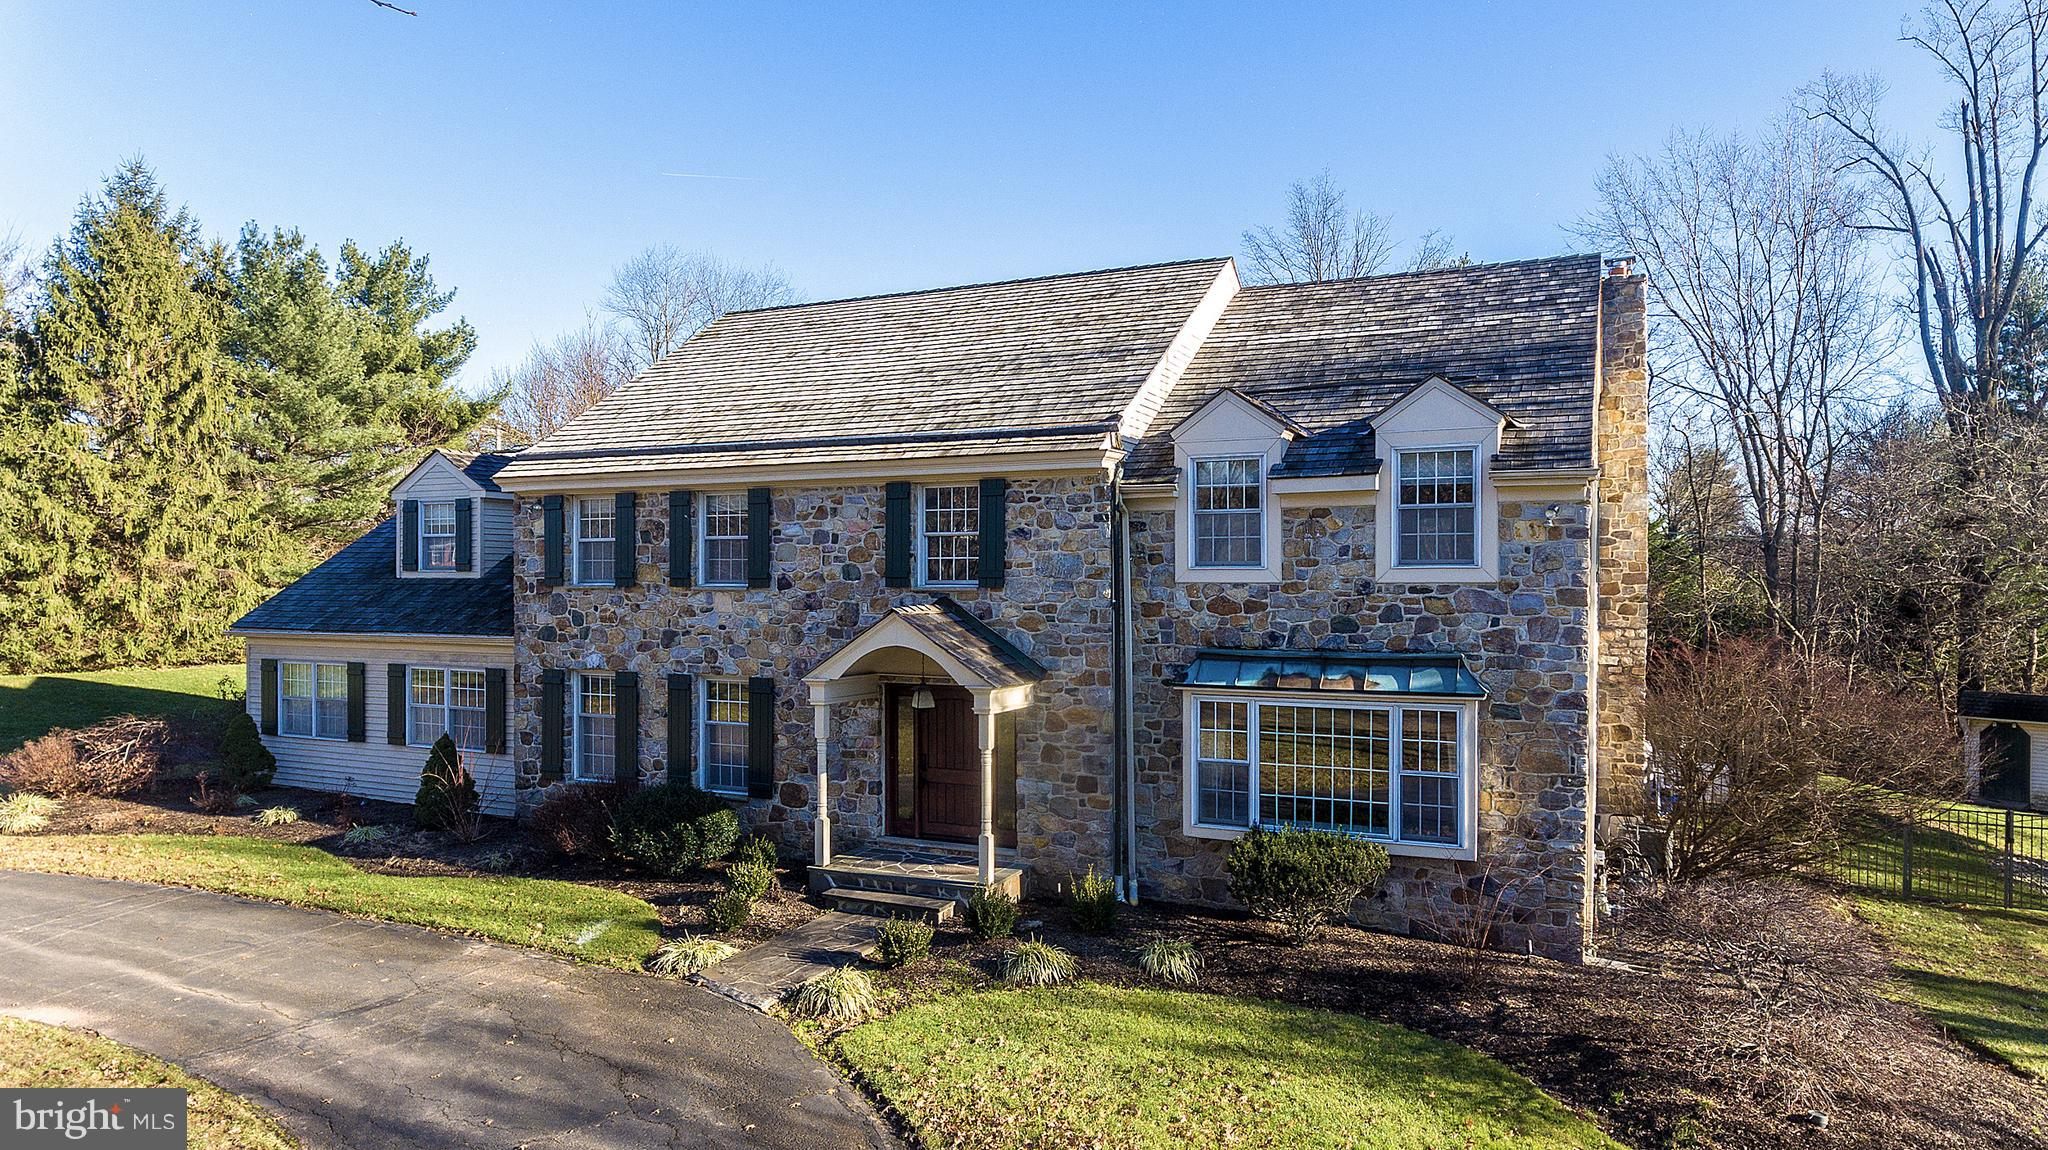 1730 GOVERNORS WAY, BLUE BELL, PA 19422